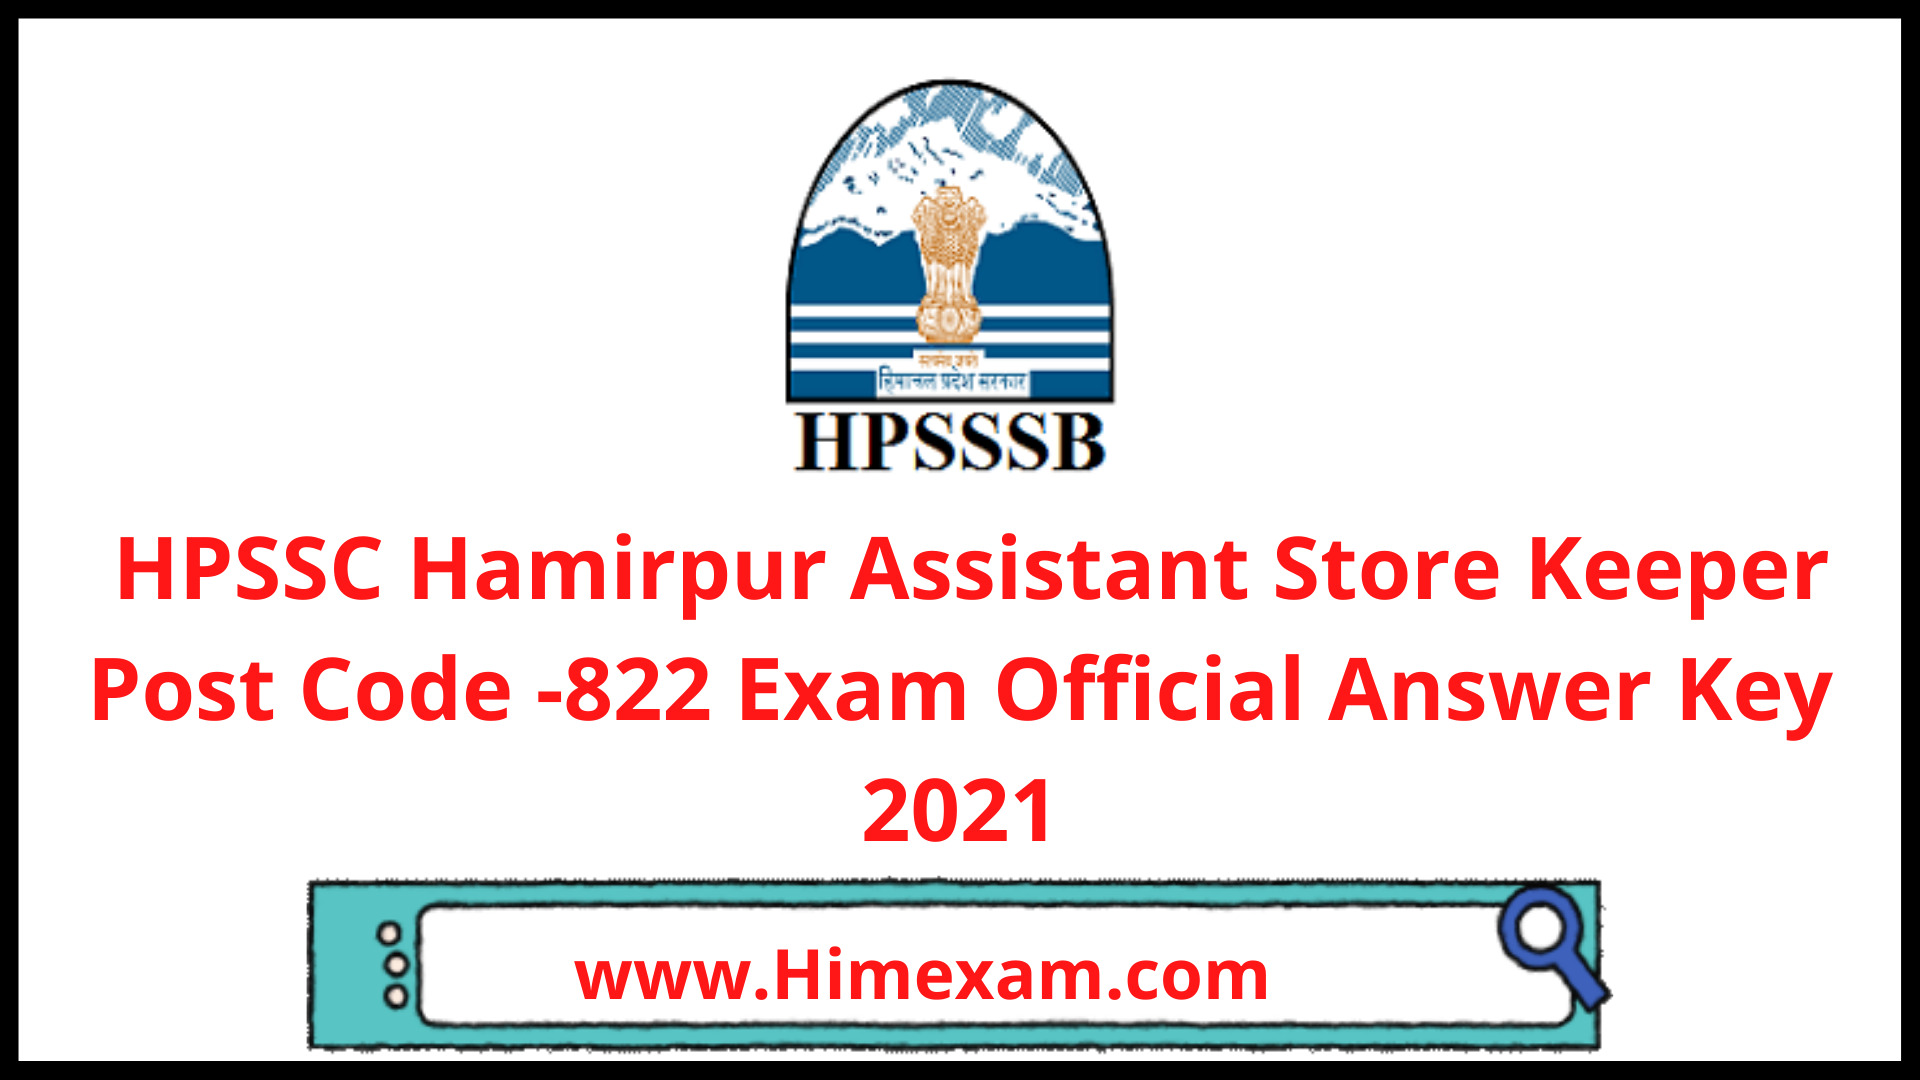 HPSSC Hamirpur Assistant Store Keeper Post Code -822 Exam Official Answer Key 2021